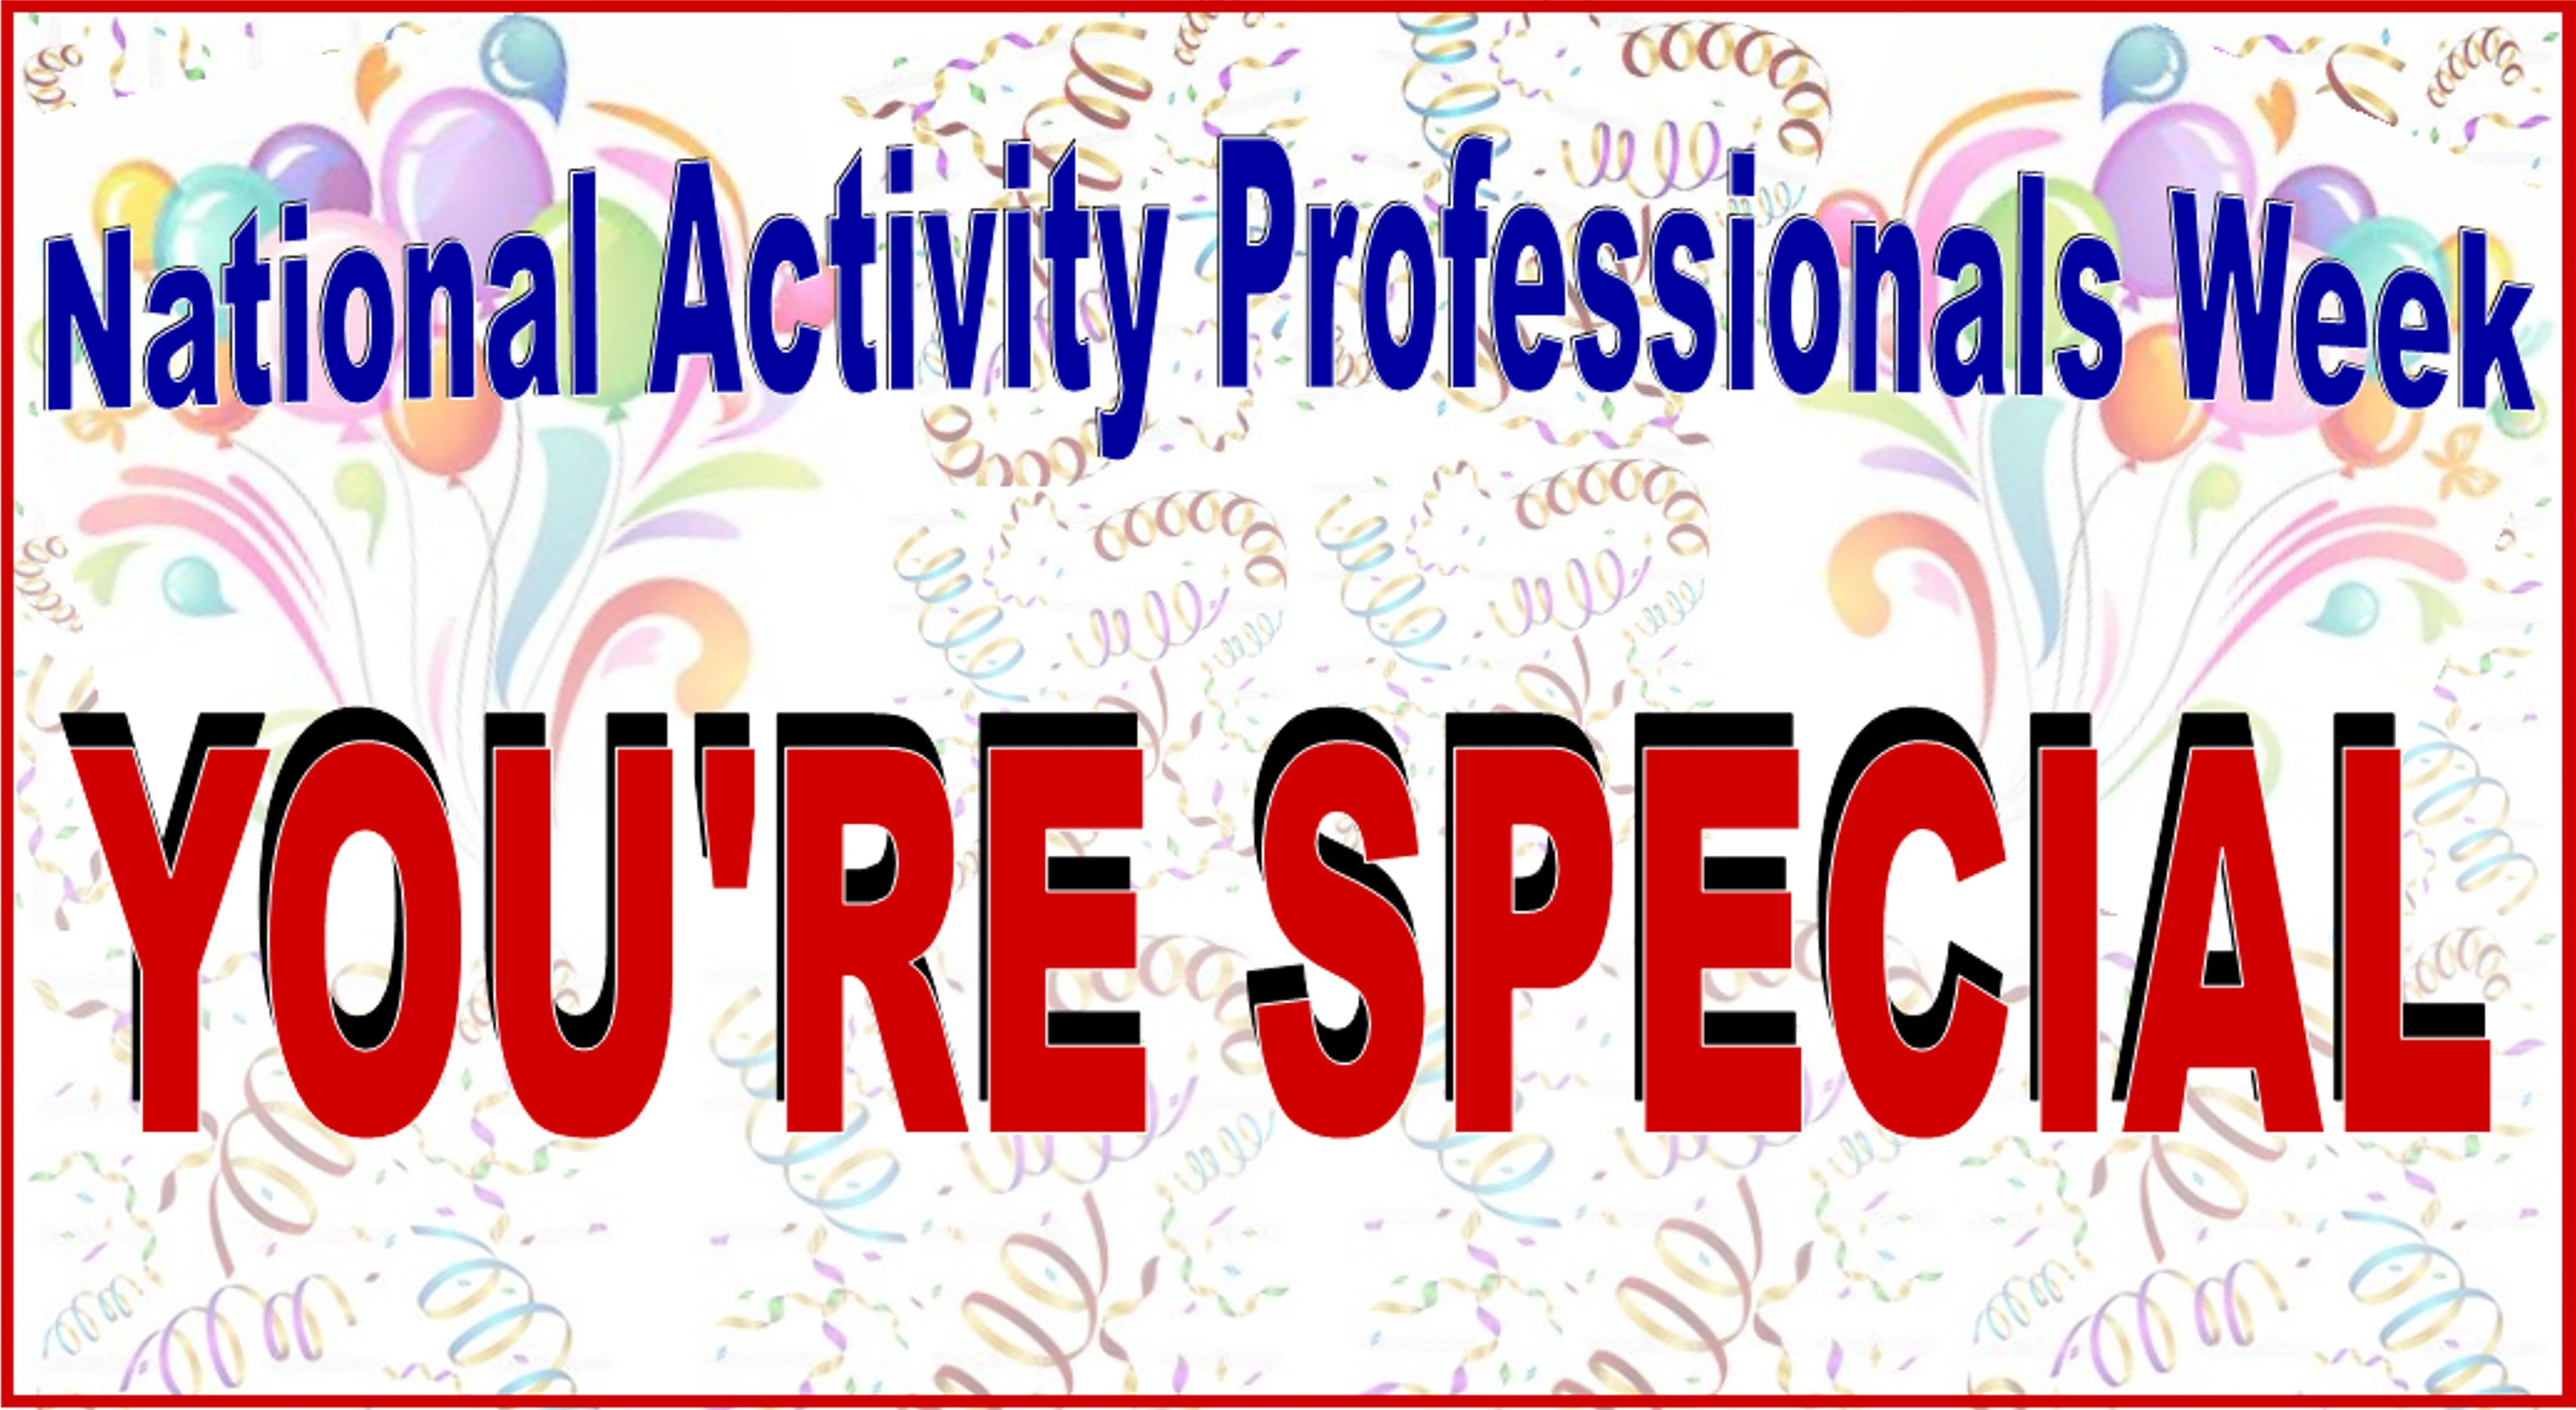 National Activity Professional Week January 18th through 24th of 2015 http://www.fhcaca.com